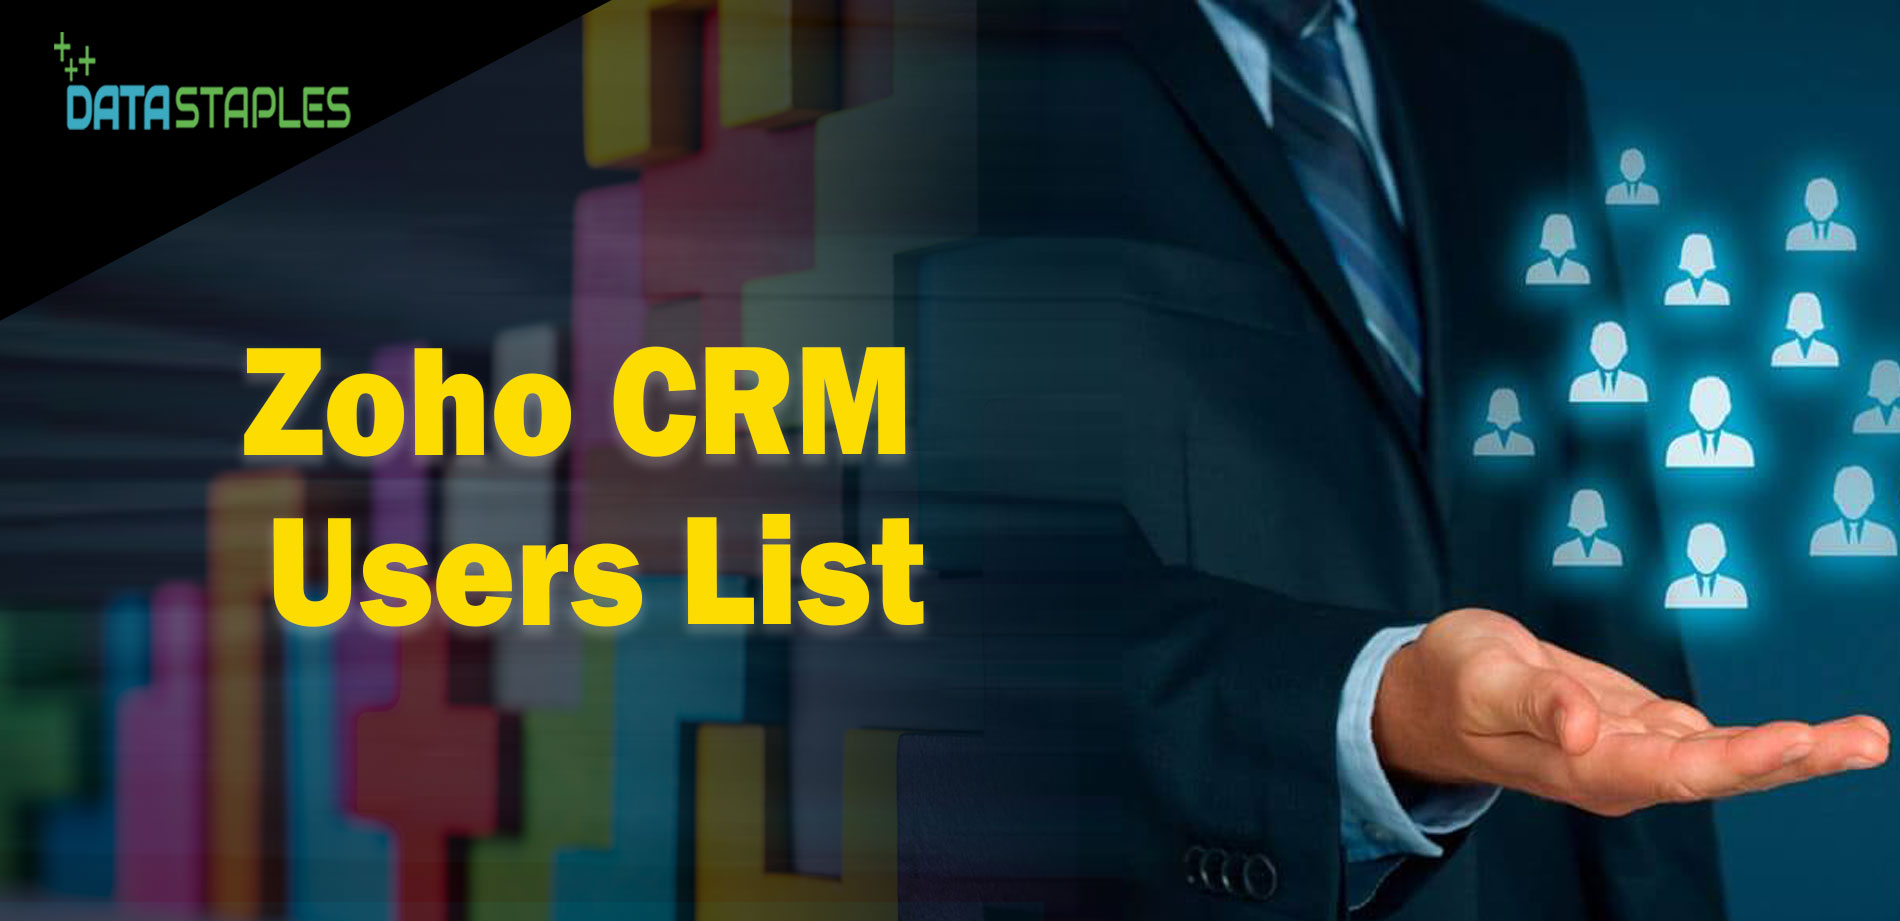 Zoho CRM Users Mailing List | DataStaples